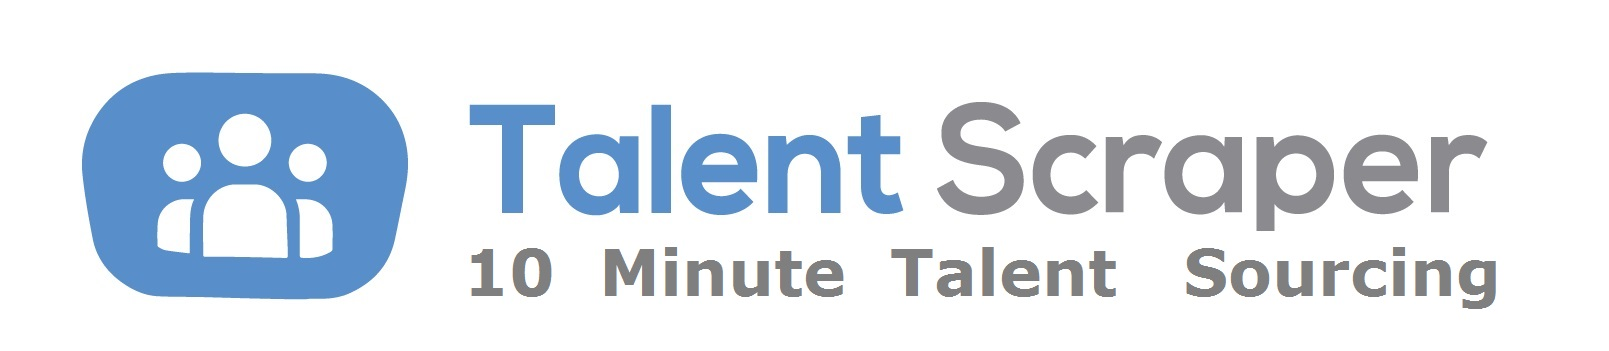 Talent Scraper: From 3.6 Billion candidates to a call list in under 10 min